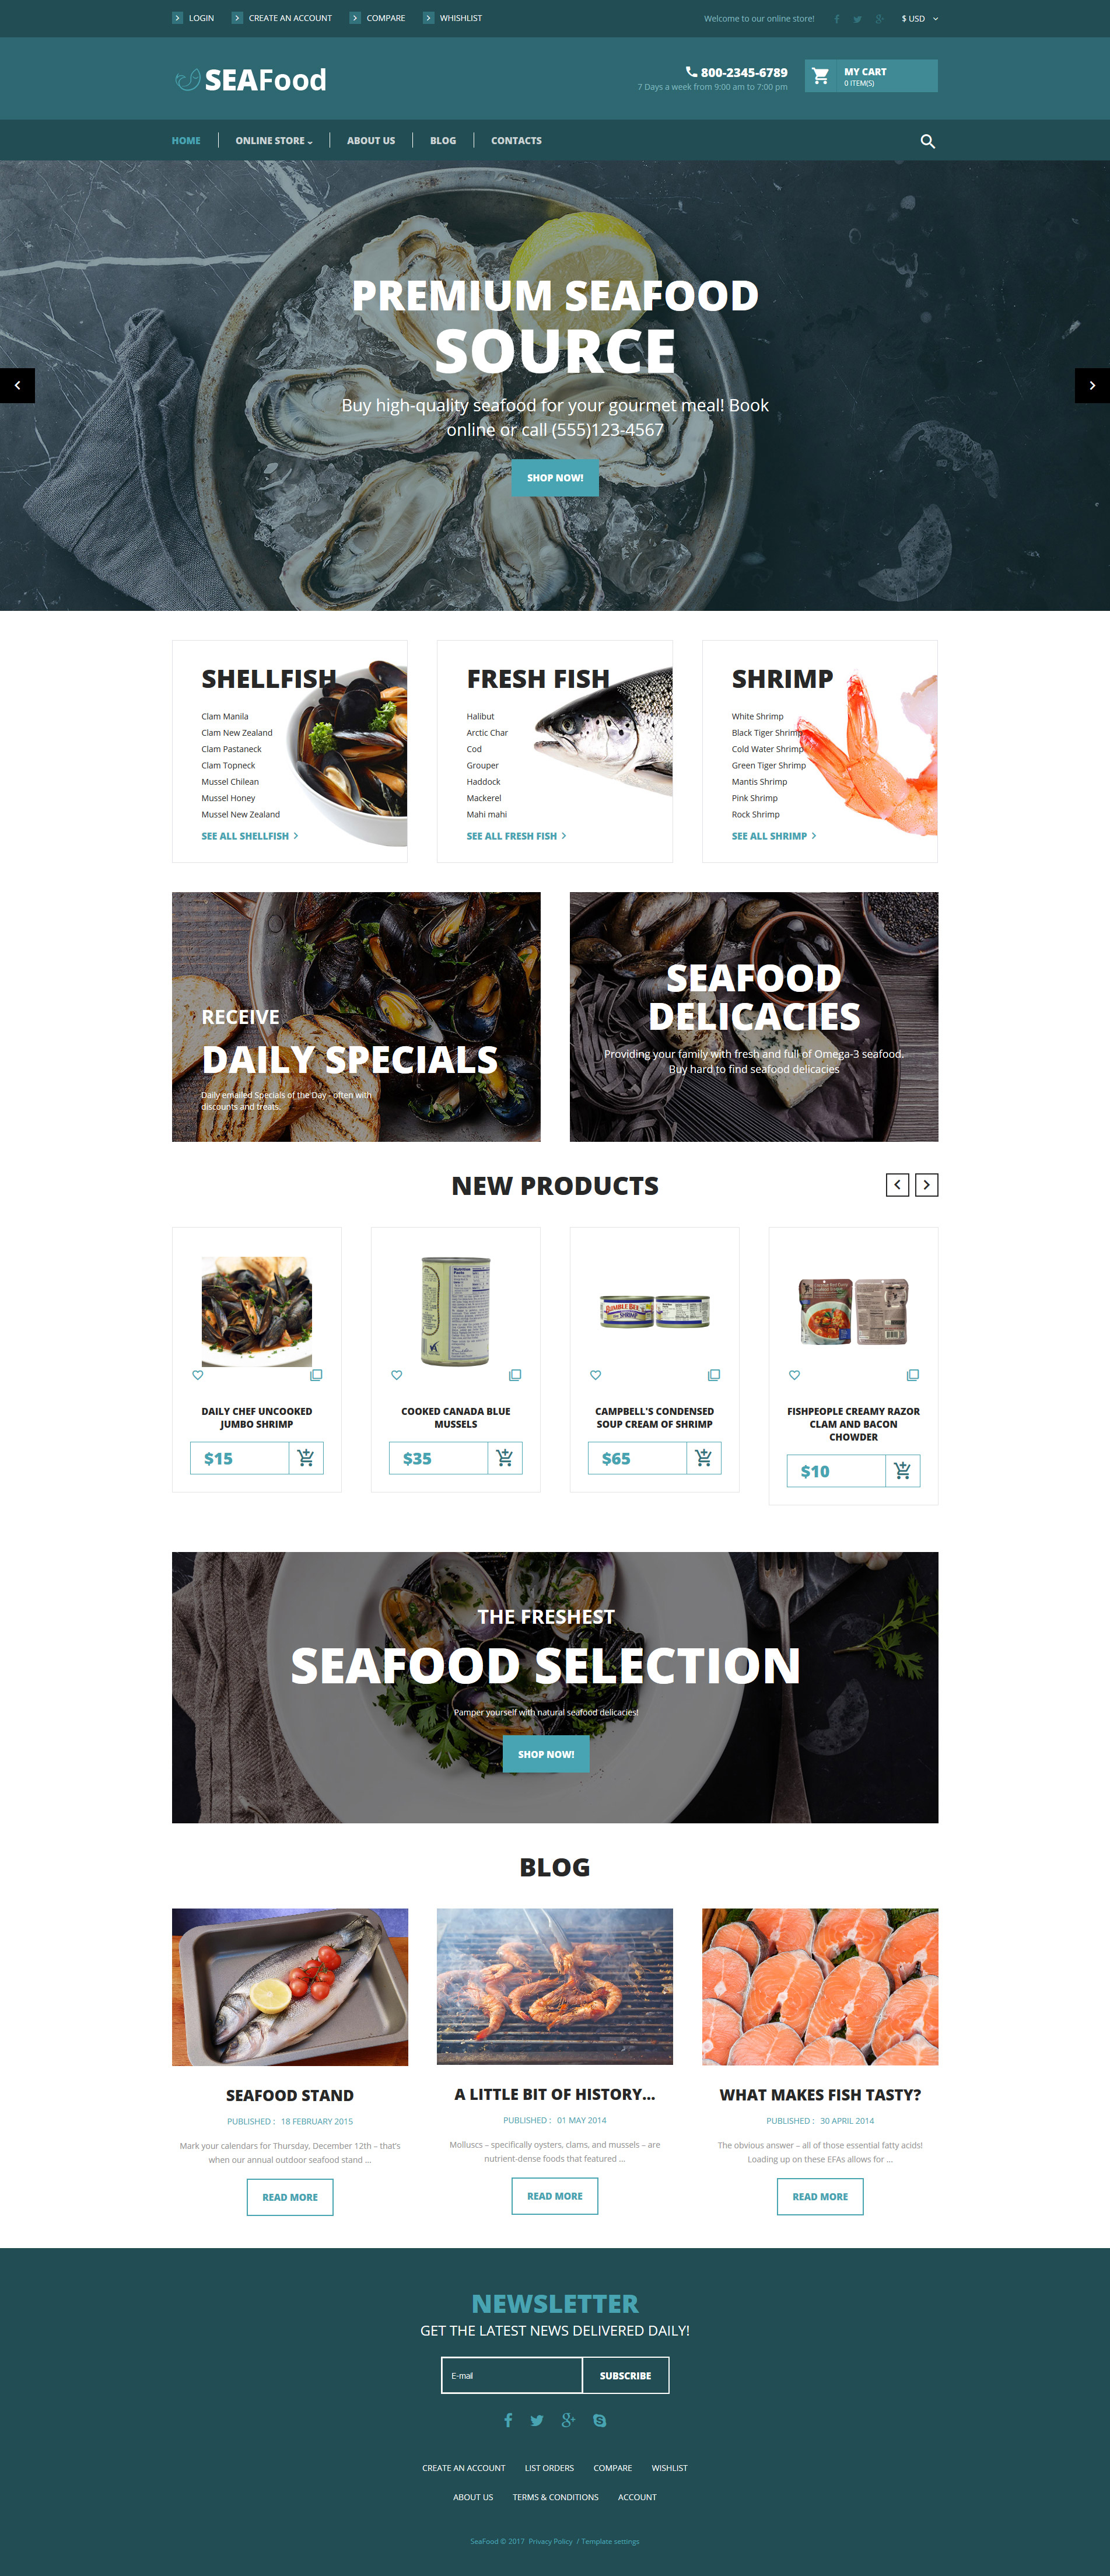 SeaFood - The Best Seafood Delicacies Virtuemart #62204